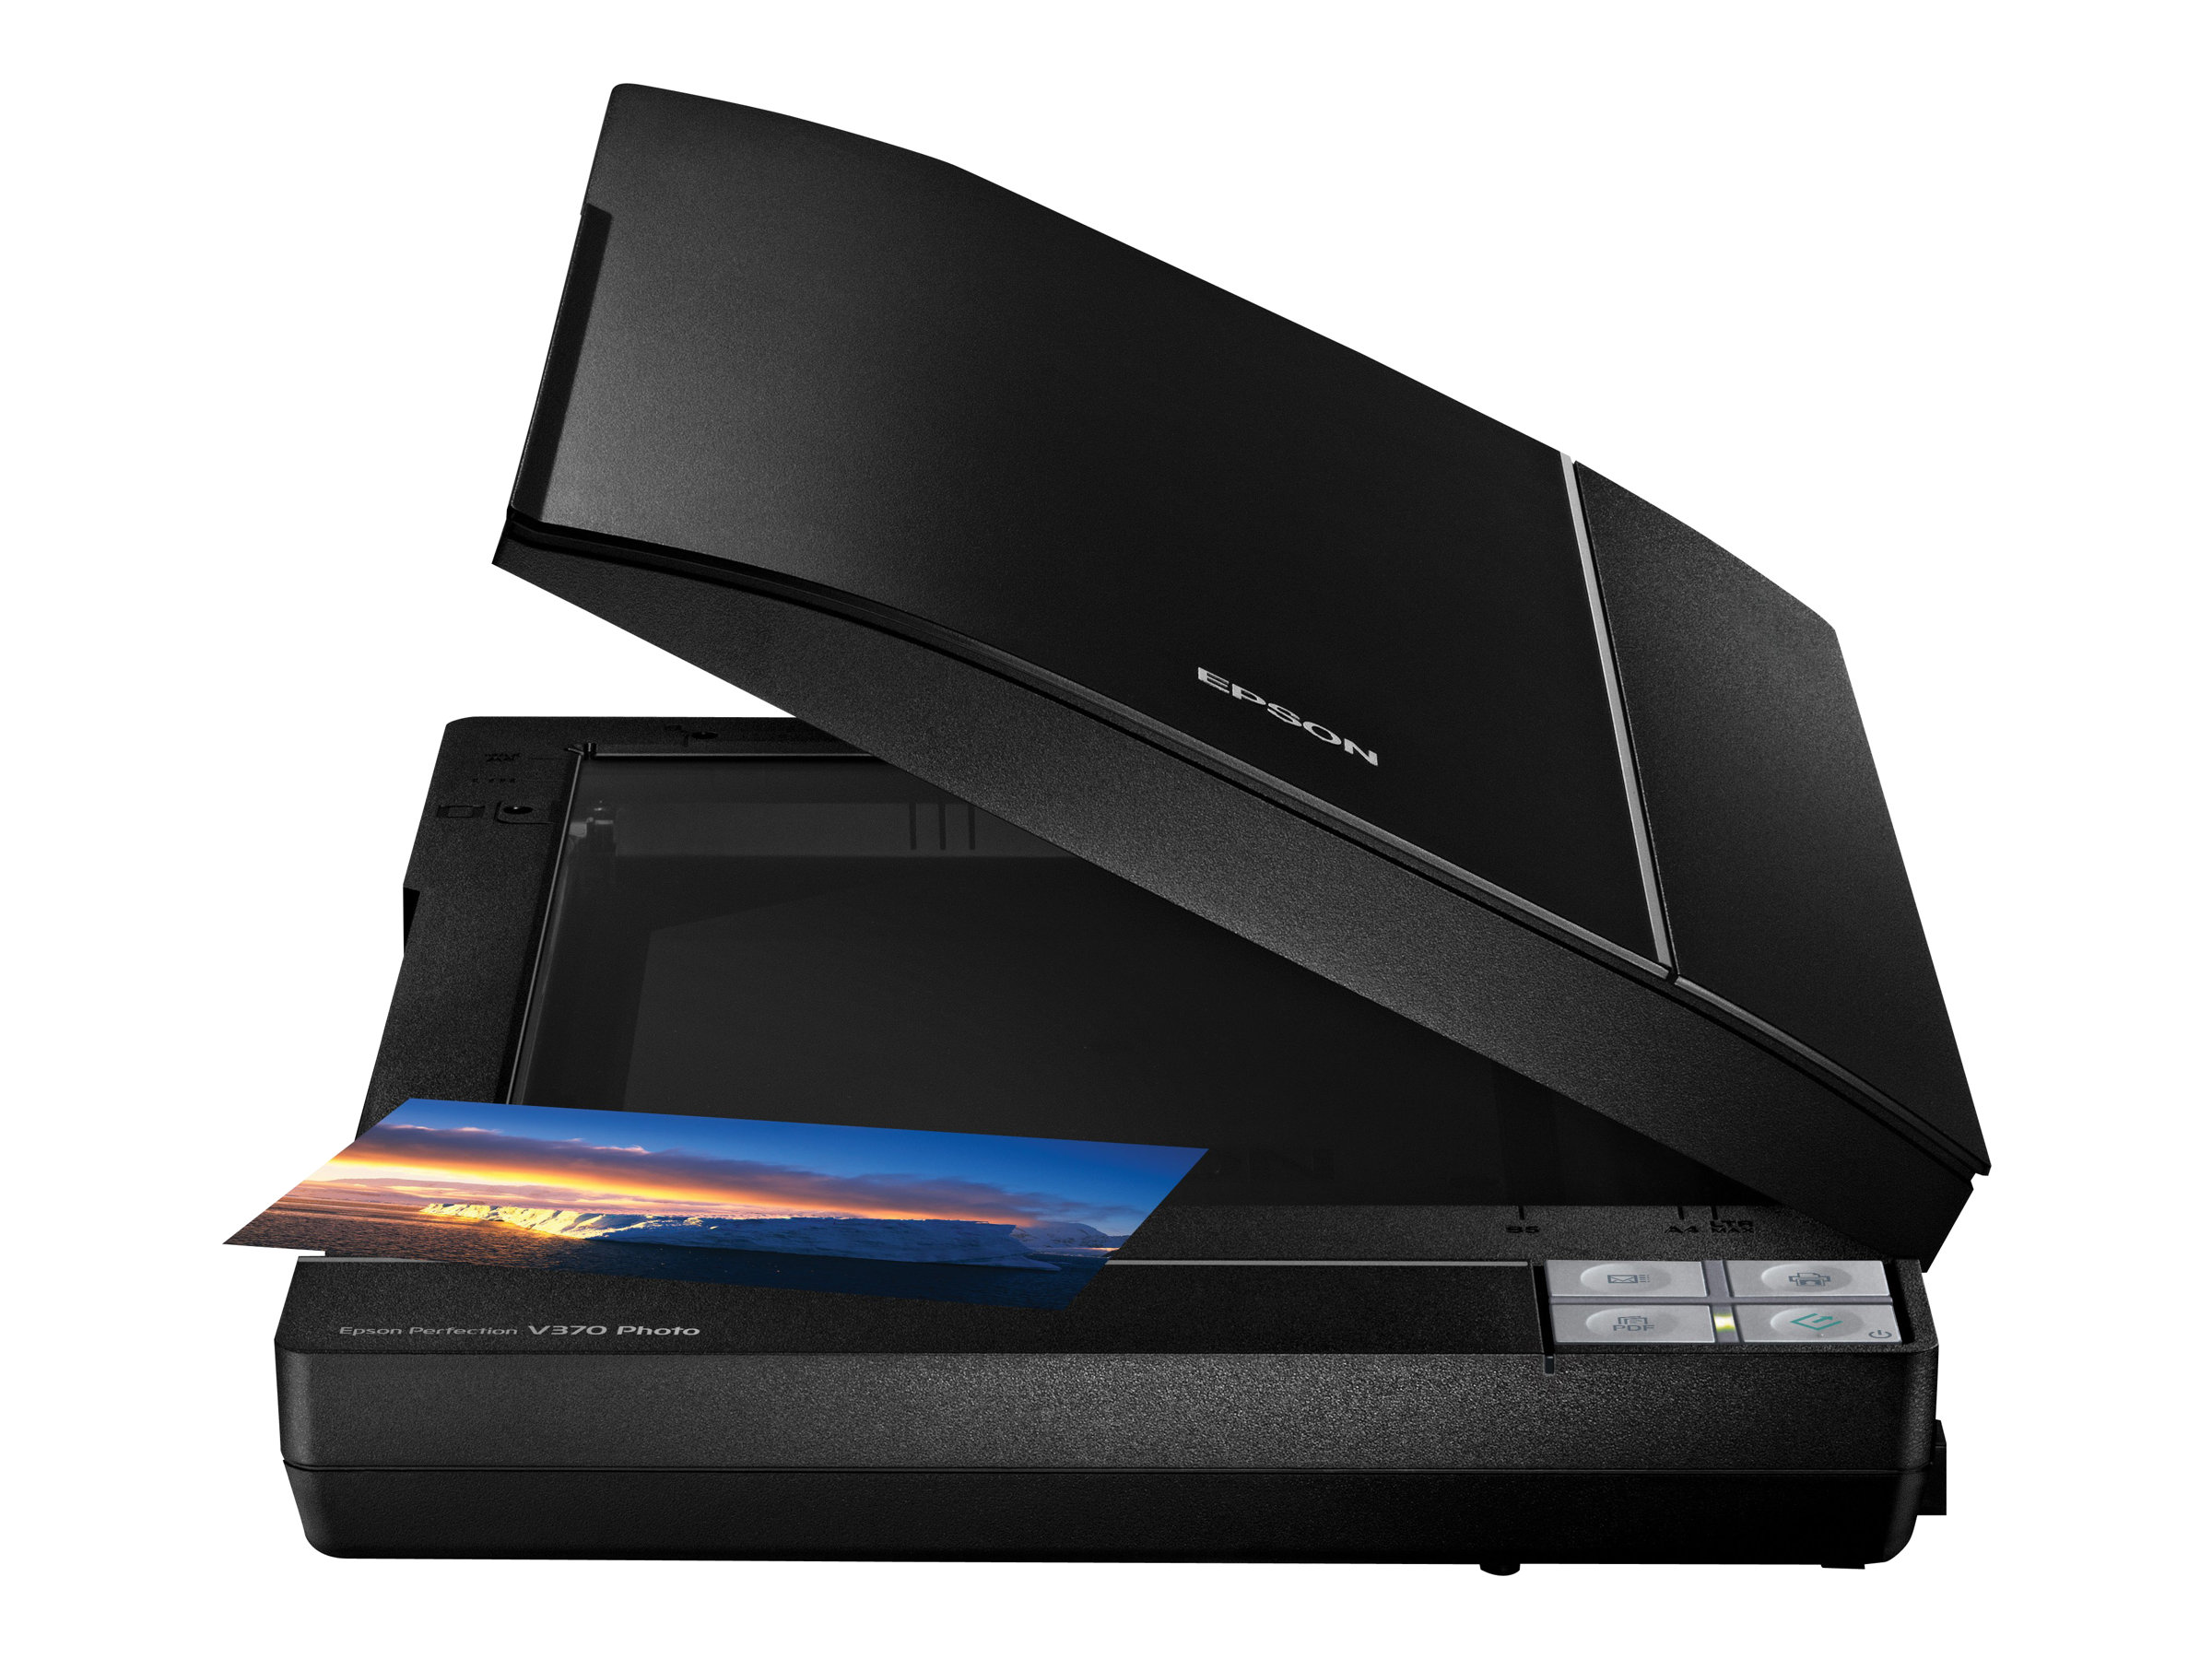 Epson Perfection V370 Photo - Flachbettscanner - A4 - 4800 dpi x 9600 dpi - USB 2.0